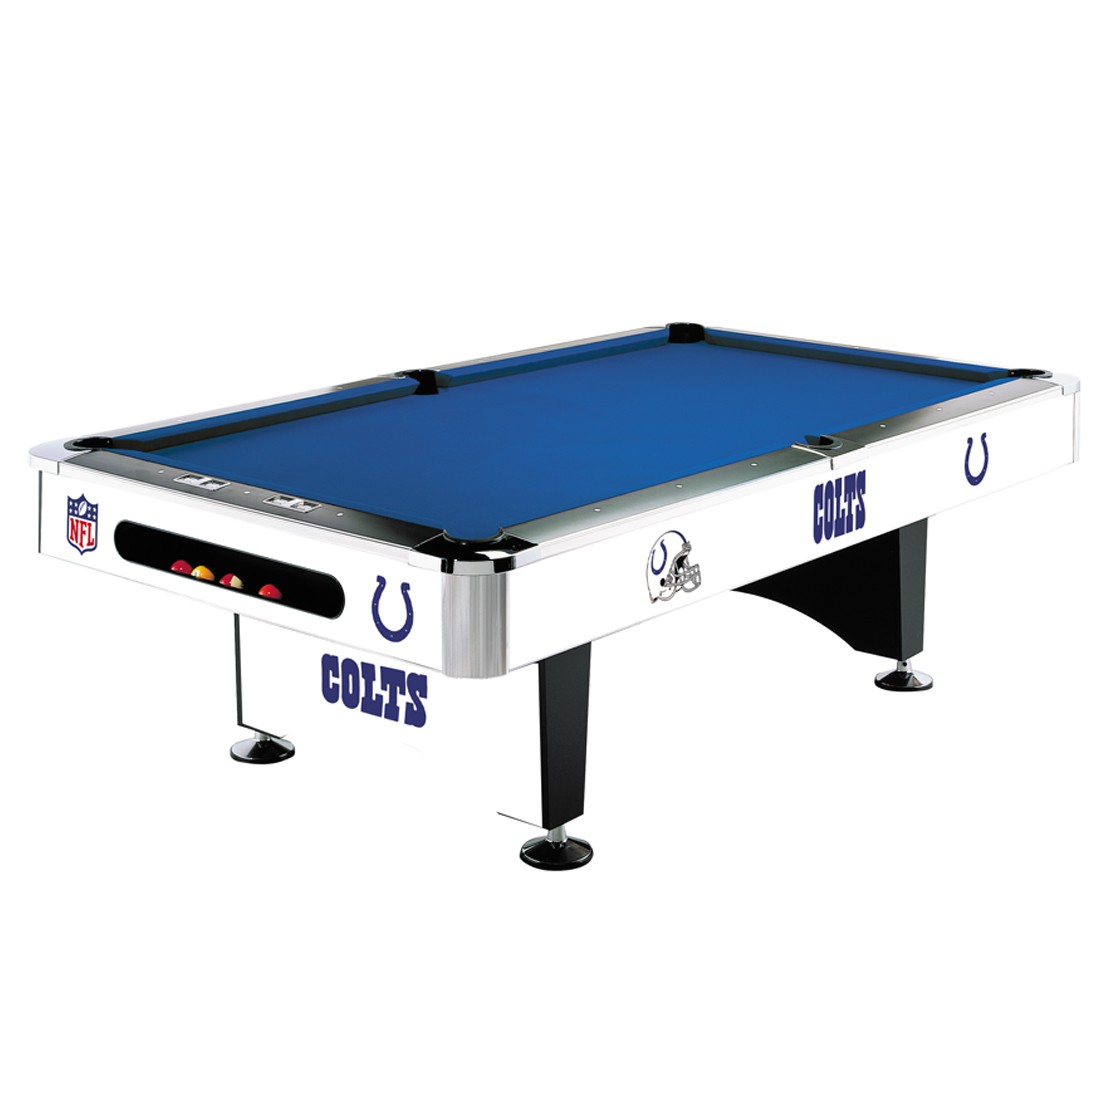 INDIANAPOLIS COLTS 8-FT. POOL TABLE